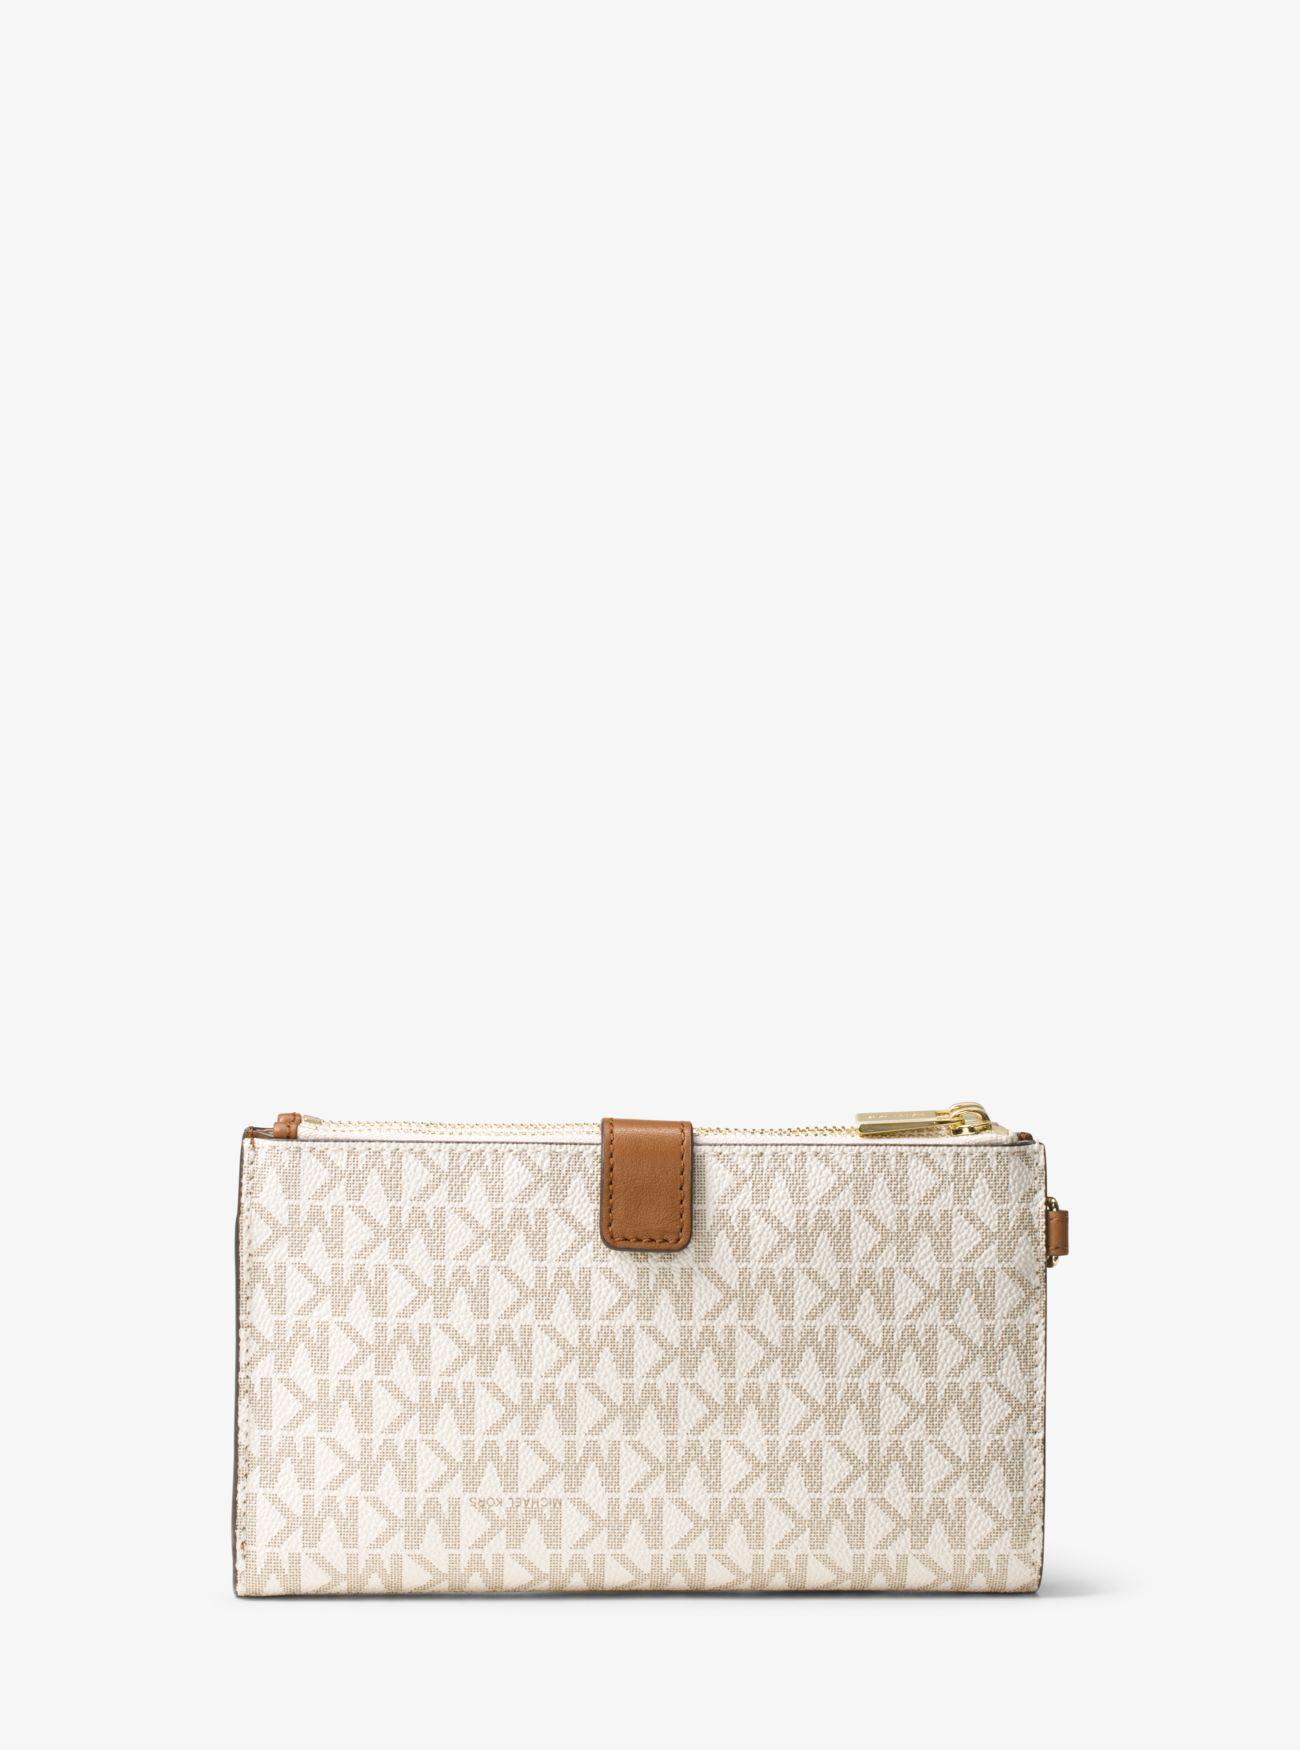 aeadf9f5ad96 Gallery. Previously sold at: Michael Kors · Women's Wristlets